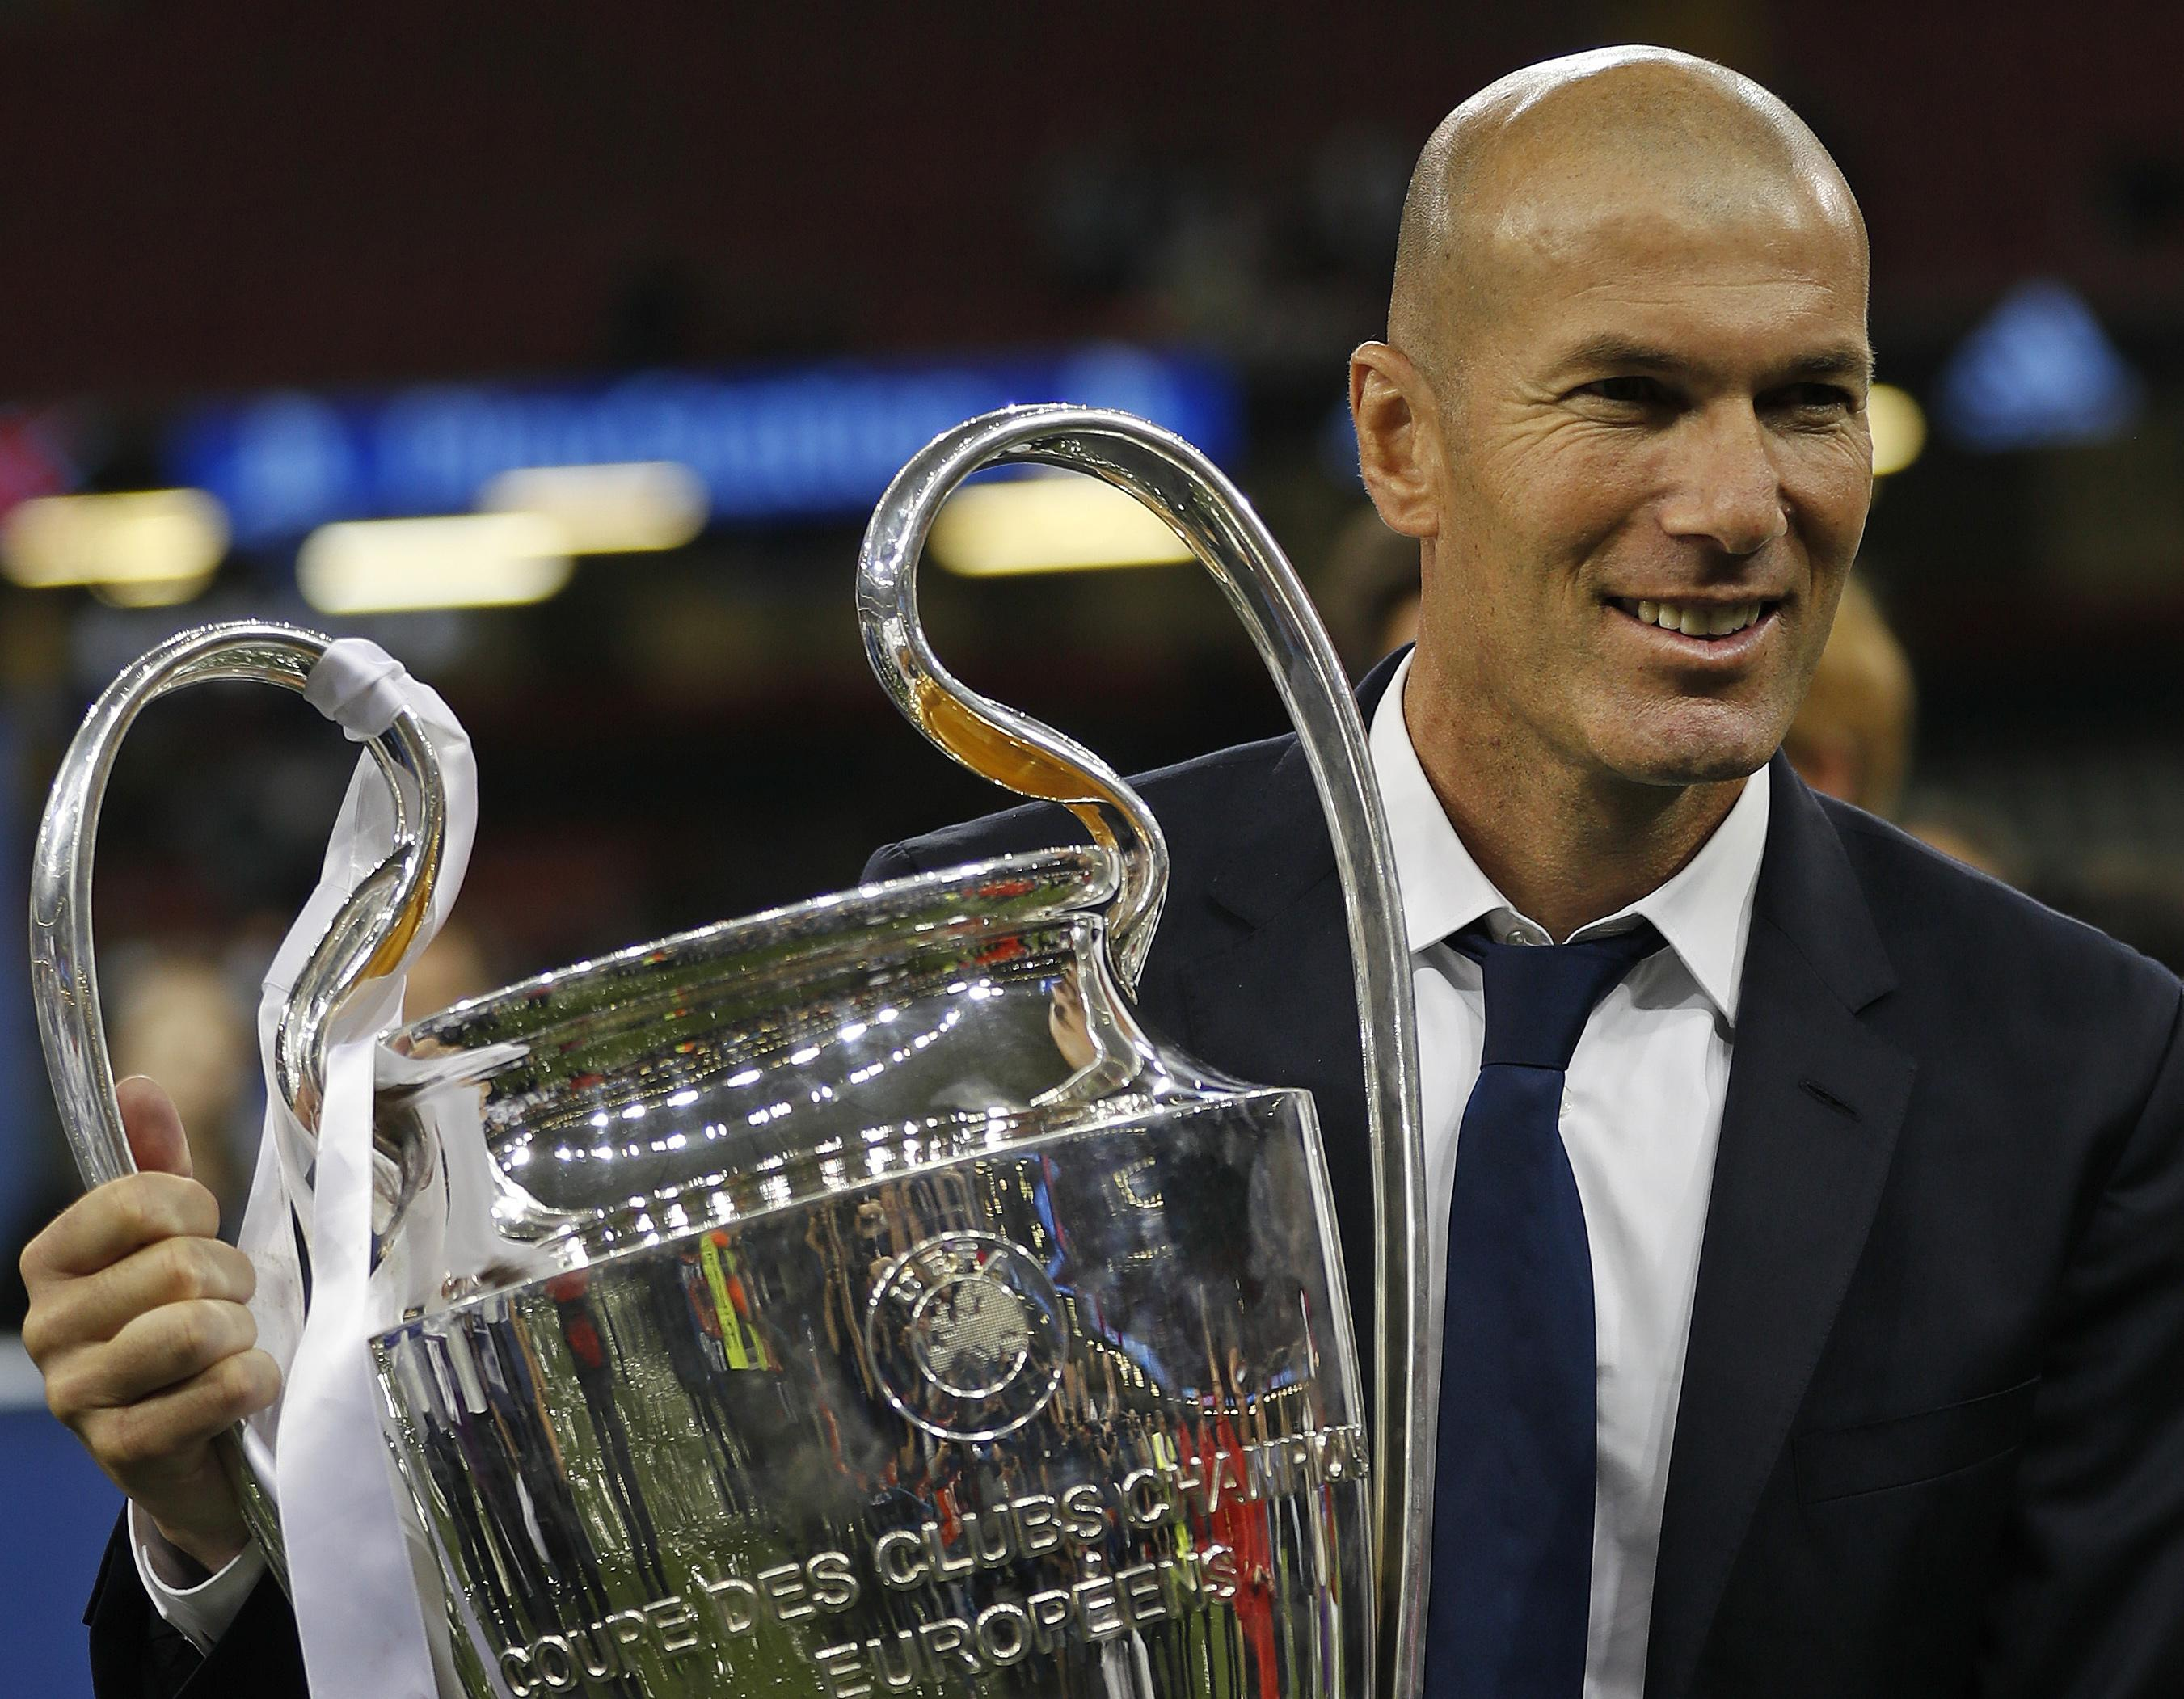 Another major trophy in Zinedine Zidane's young coaching career | The Spokesman-Review